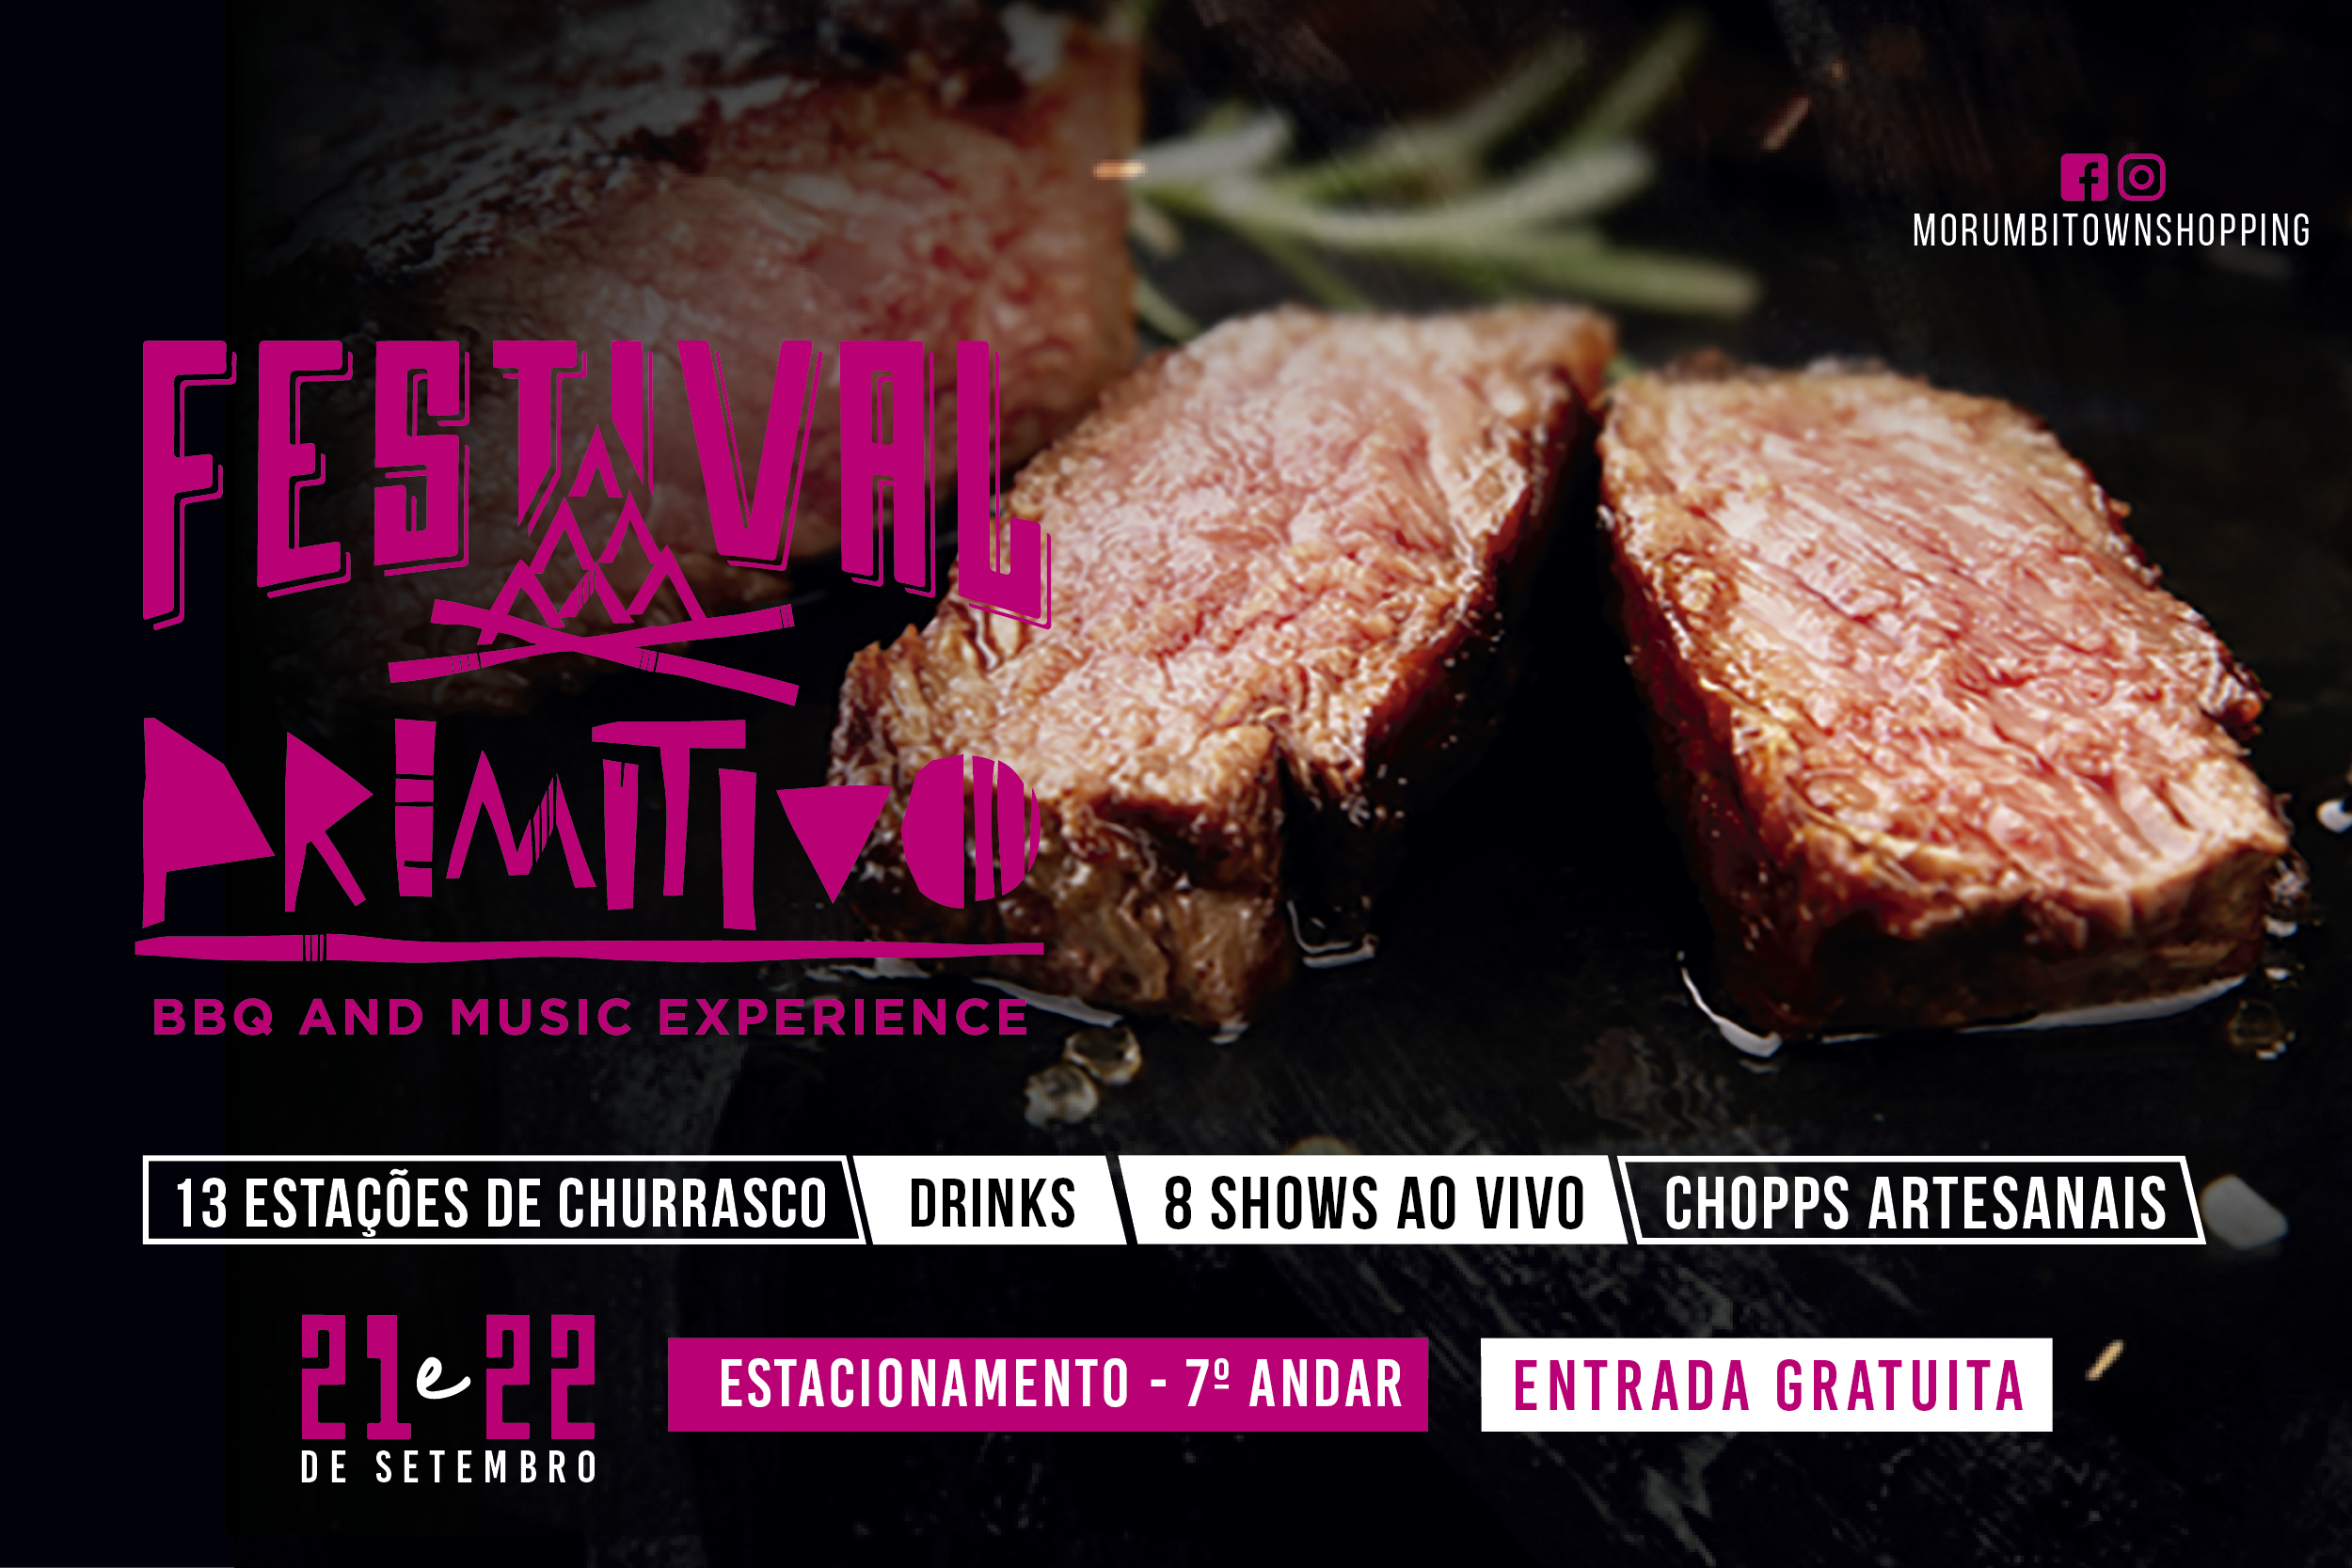 Festival Primitivo BBQ and Music Experience